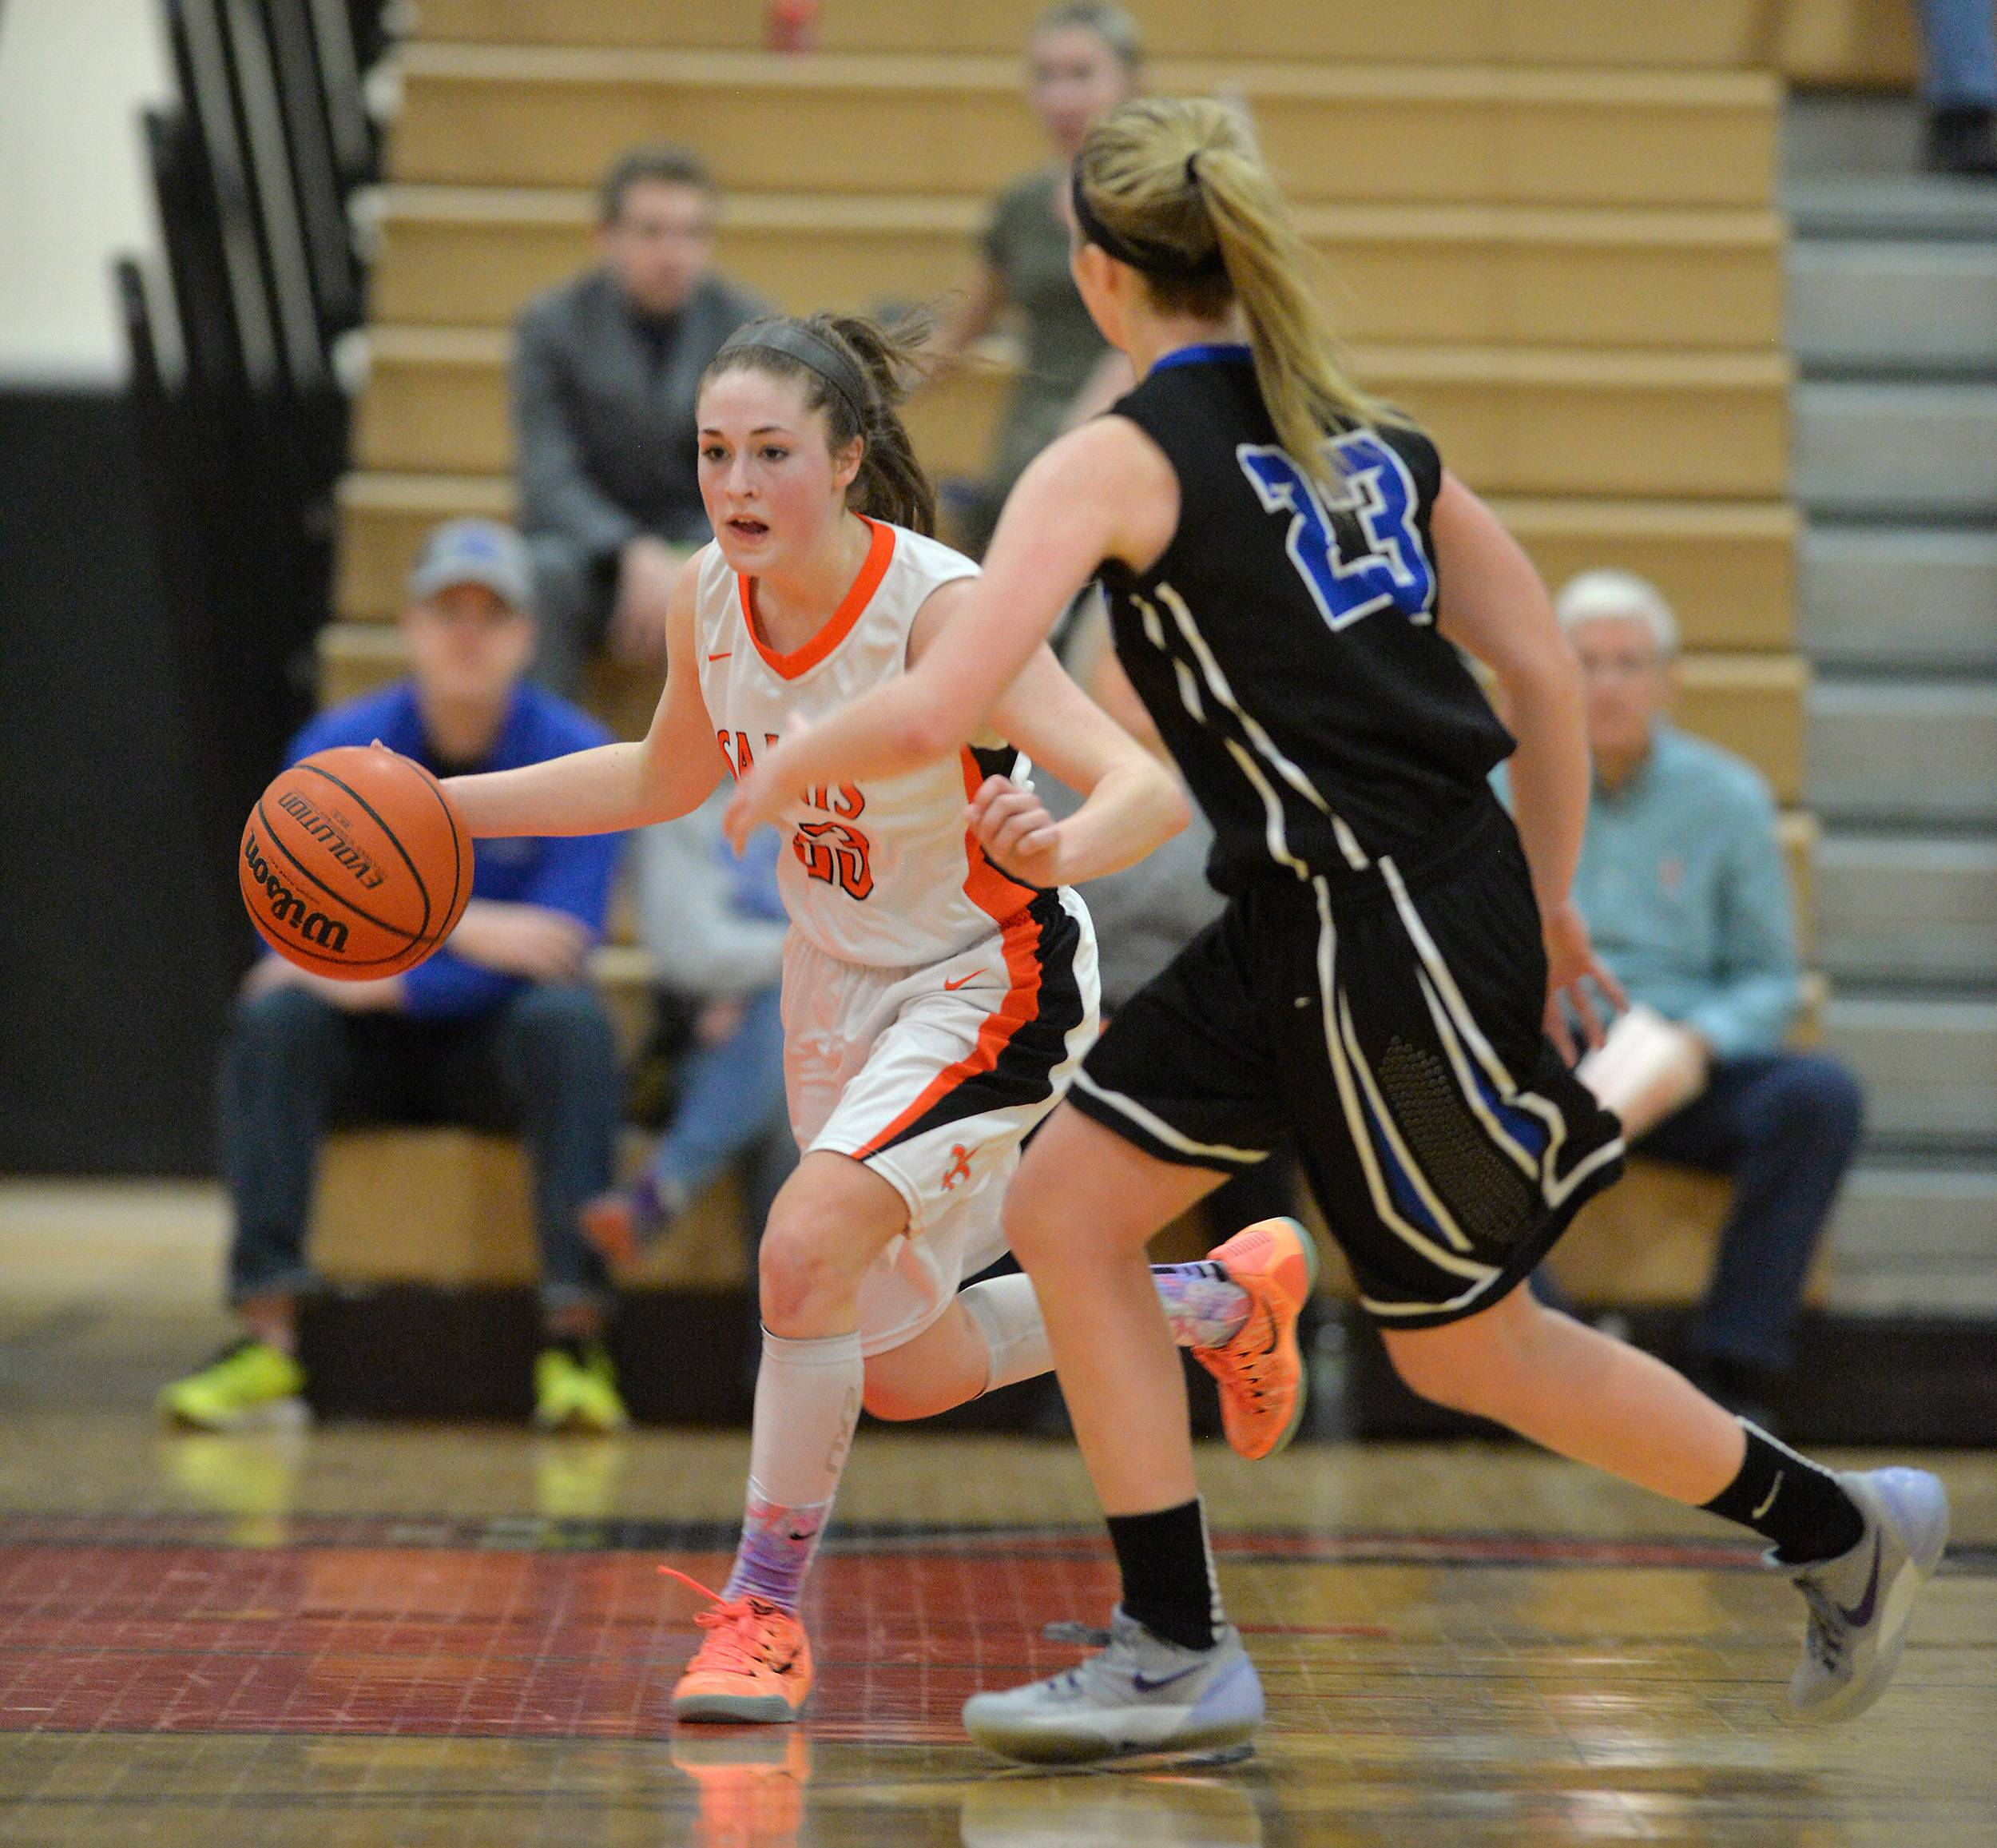 St. Charles East hangs on, tops St. Charles North